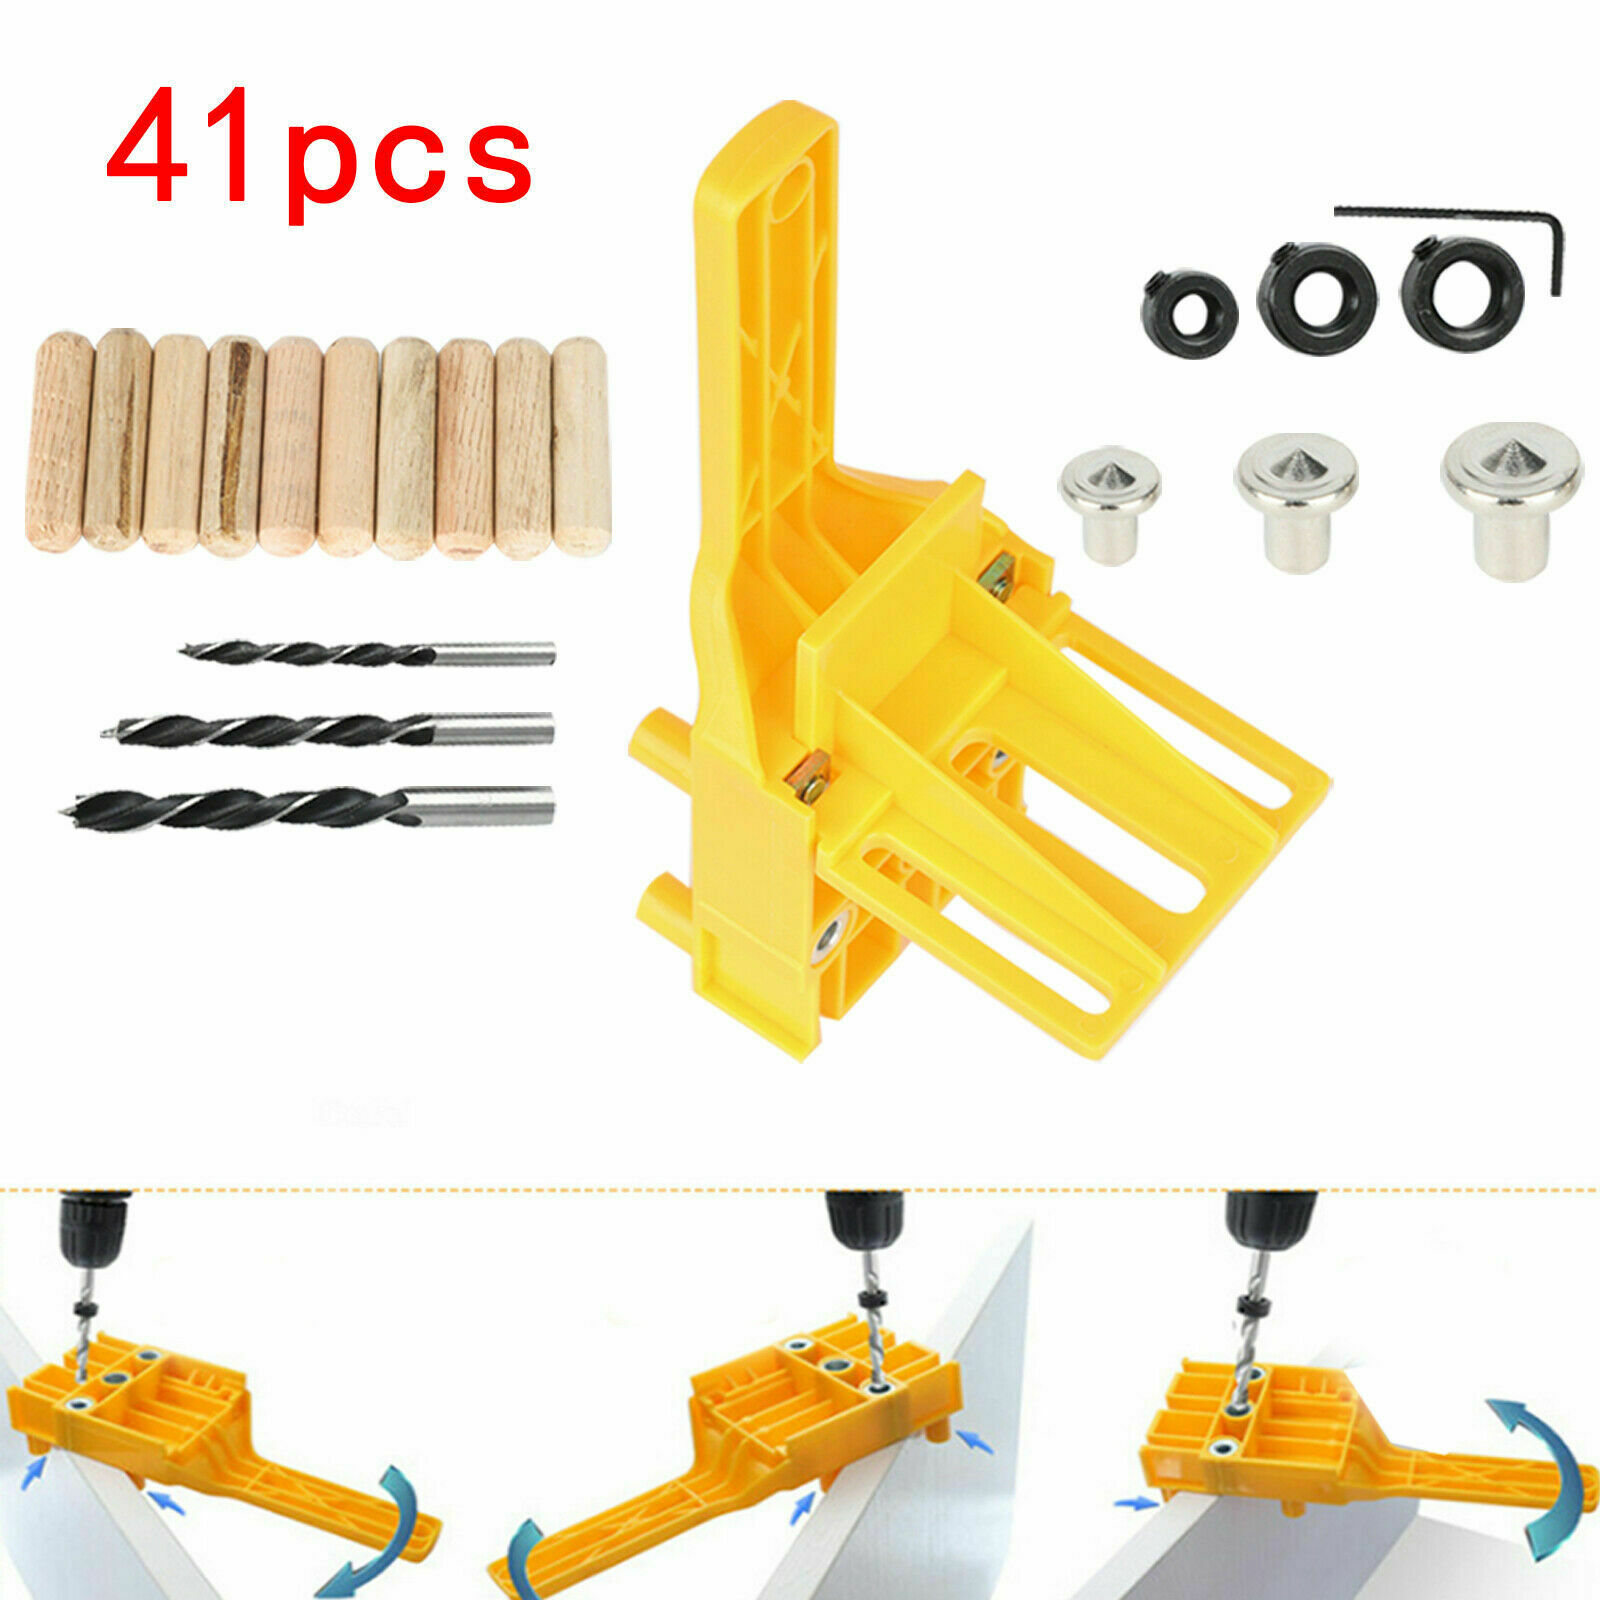 41PC Handheld Woodworking Guide Wood Dowel Jig Drilling Hole Saw Drill Kits Set